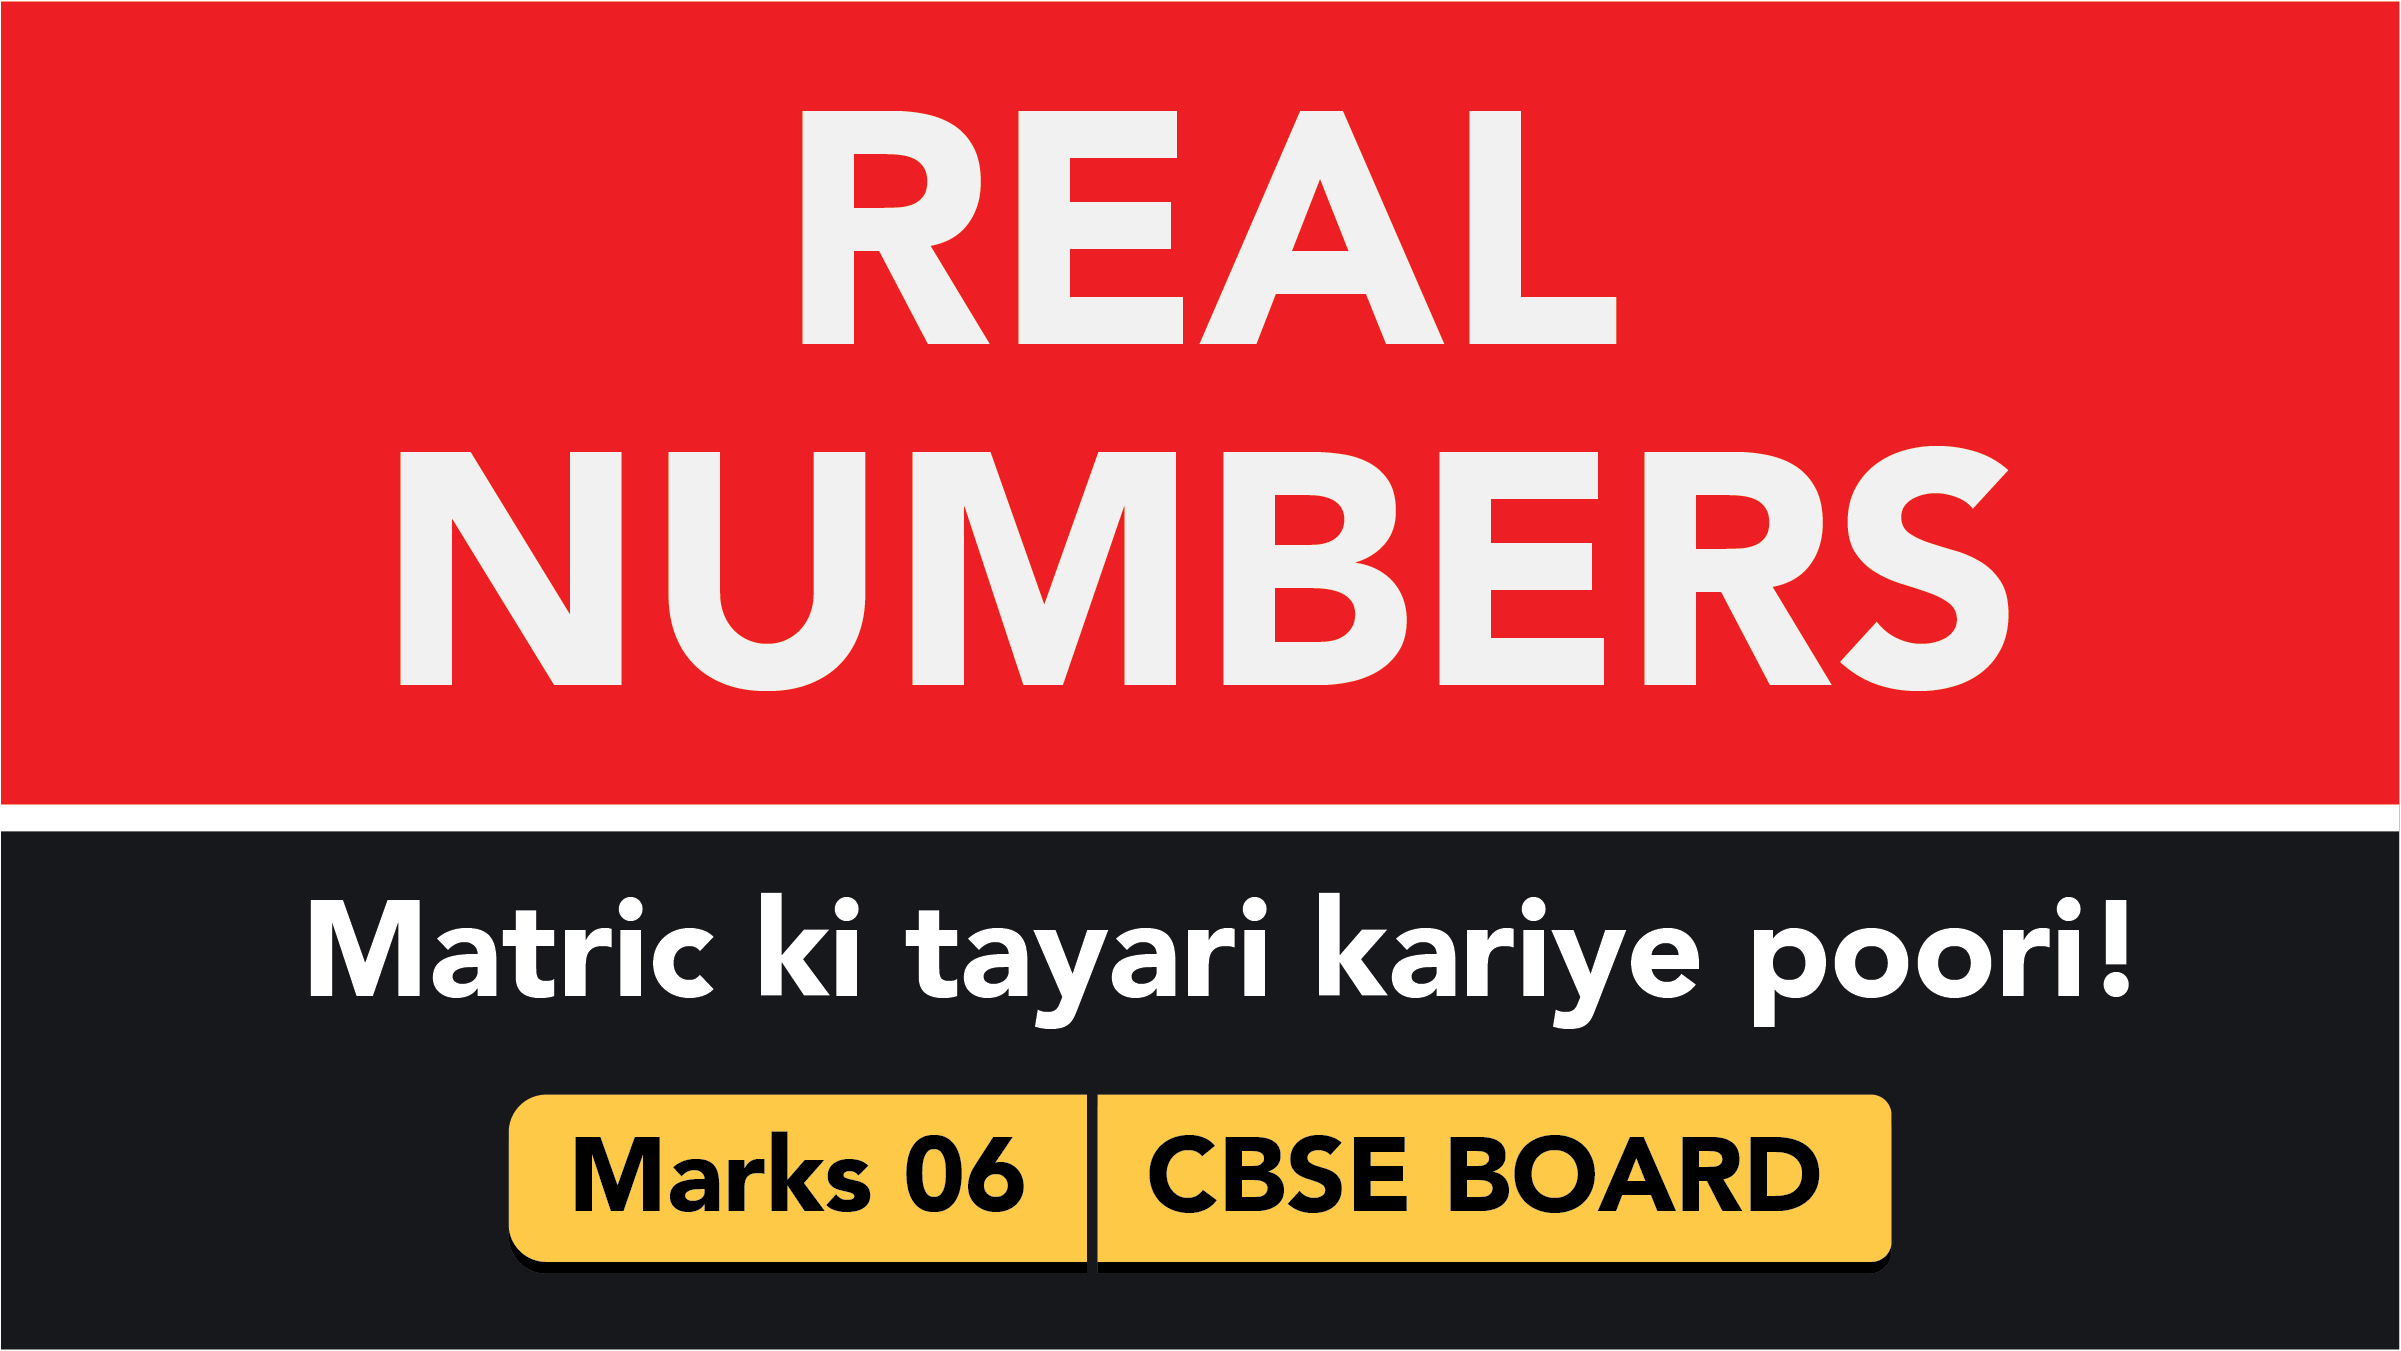 CBSE Board Class 10 REAL NUMBERS || Weightage and Important Topics